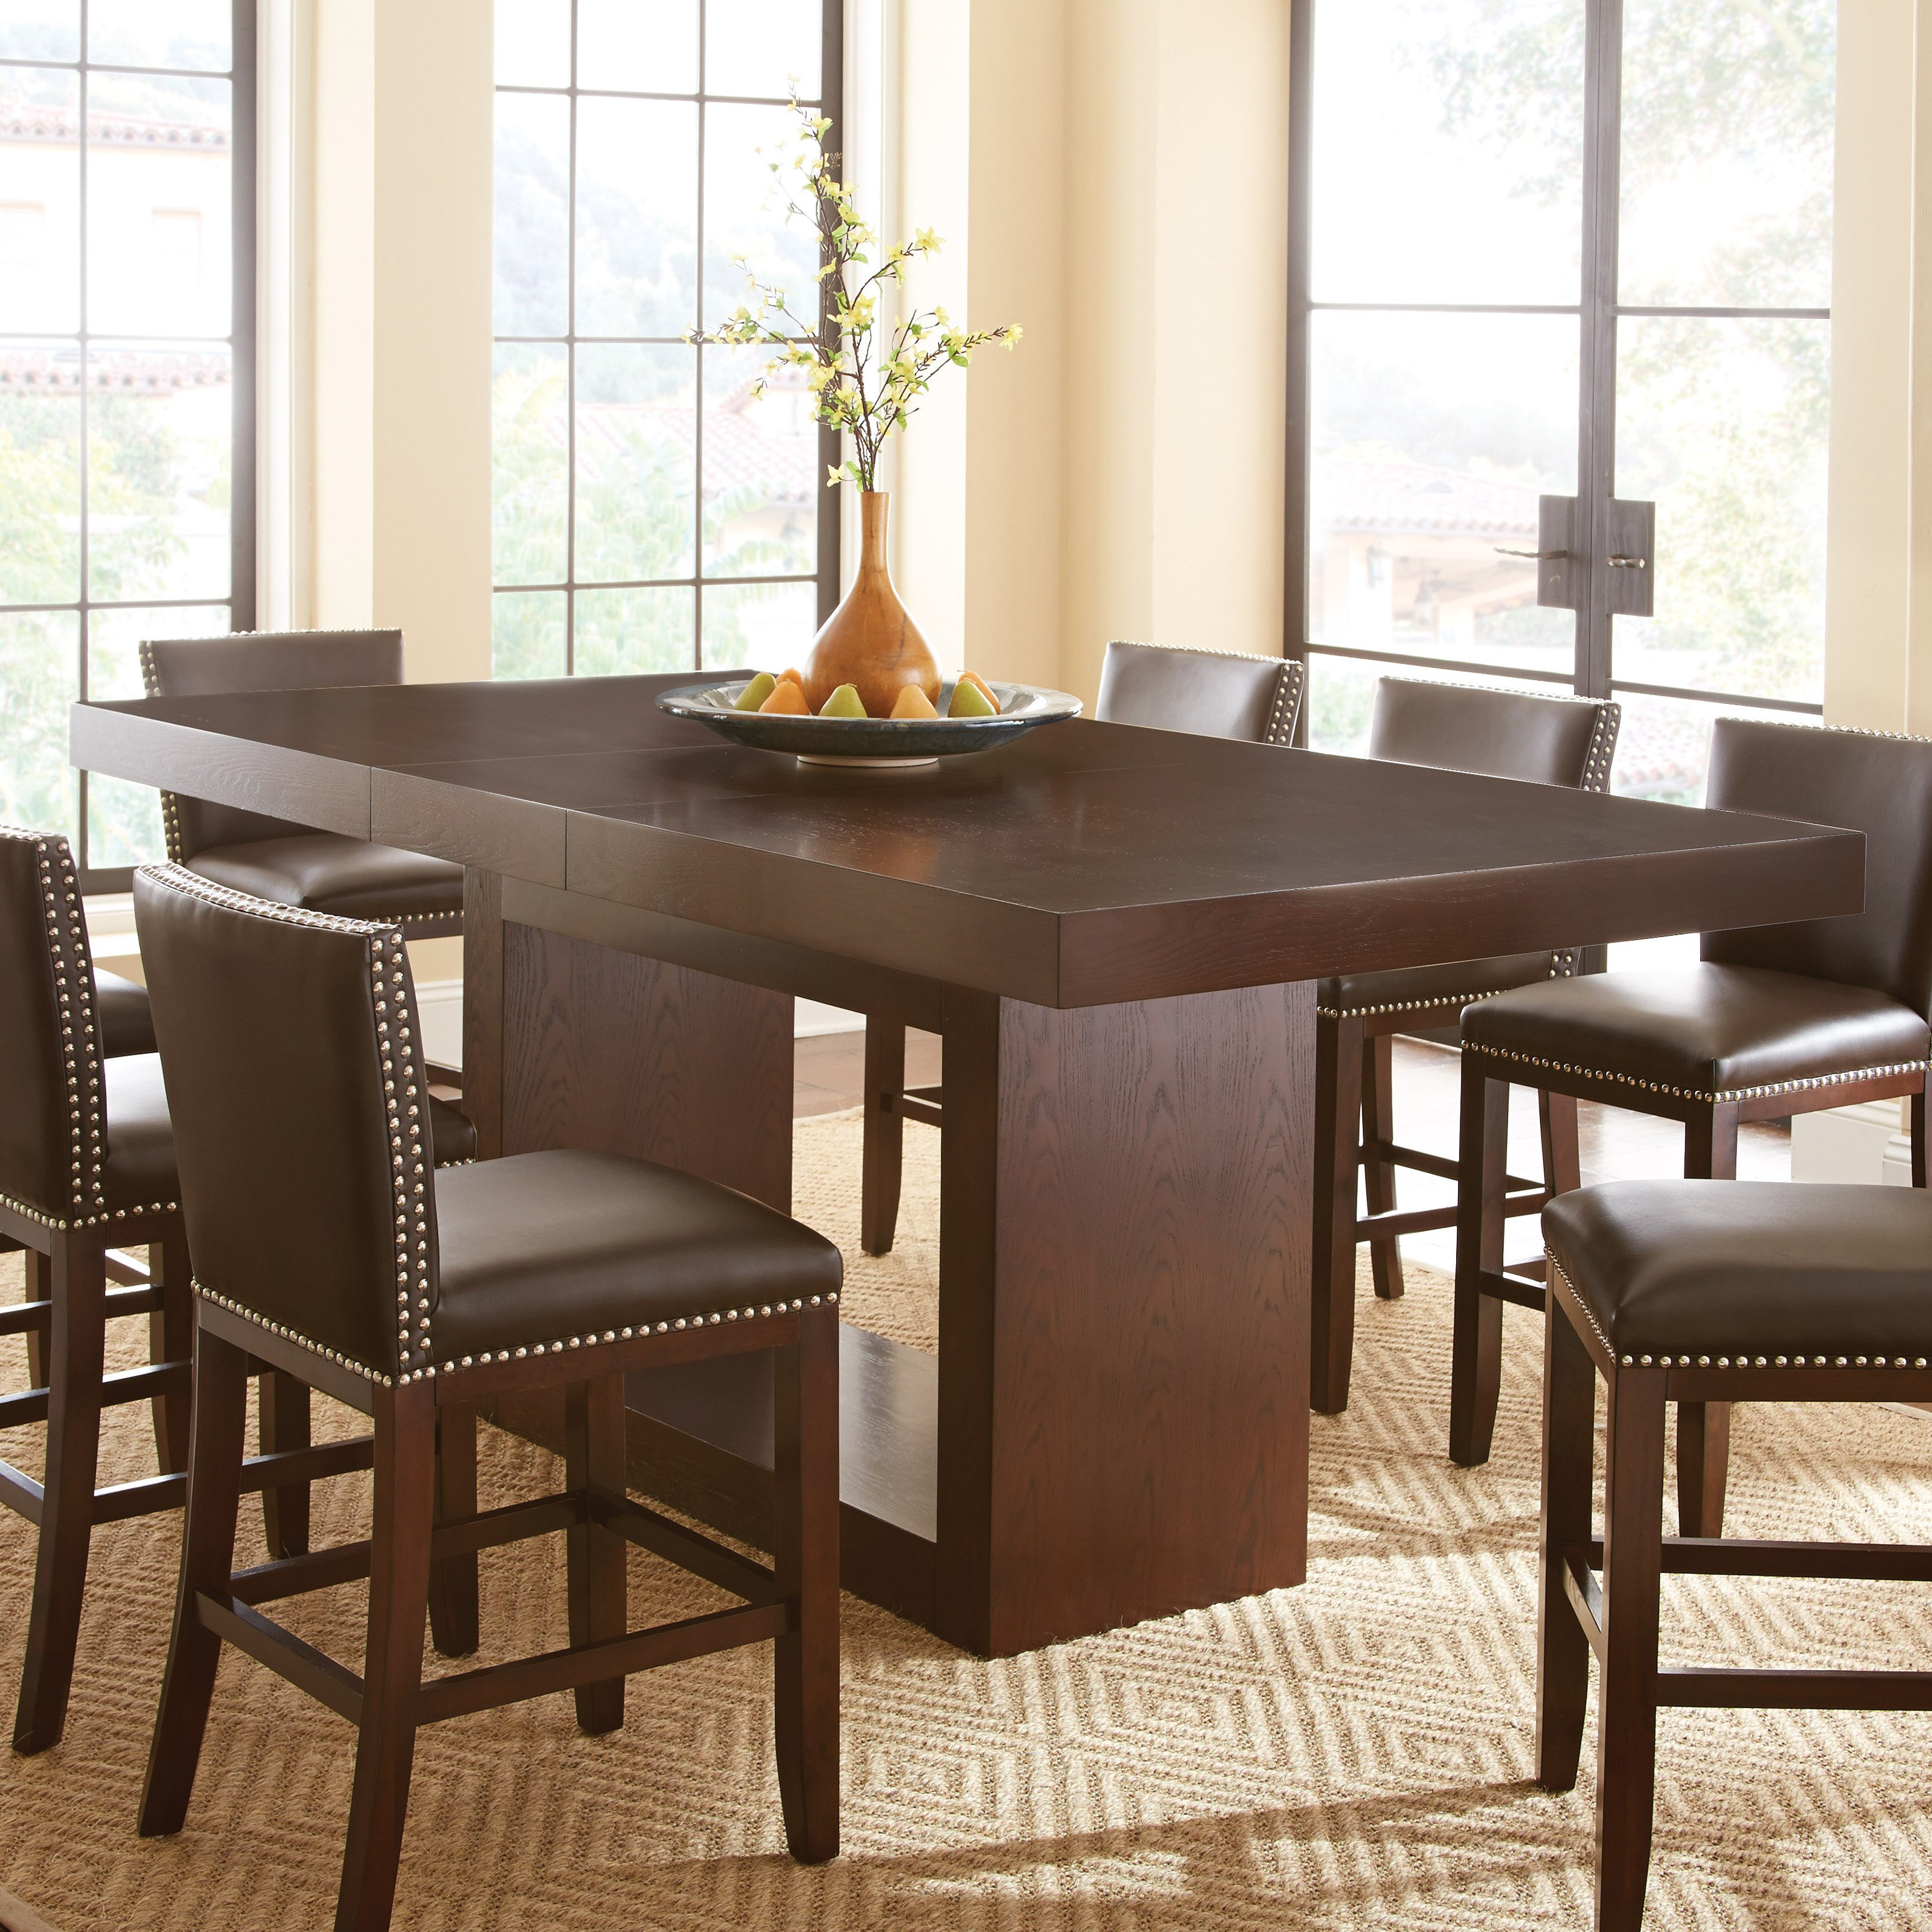 Best ideas about Tall Dining Table . Save or Pin Steve Silver Antonio Counter Height Dining Table Dining Now.